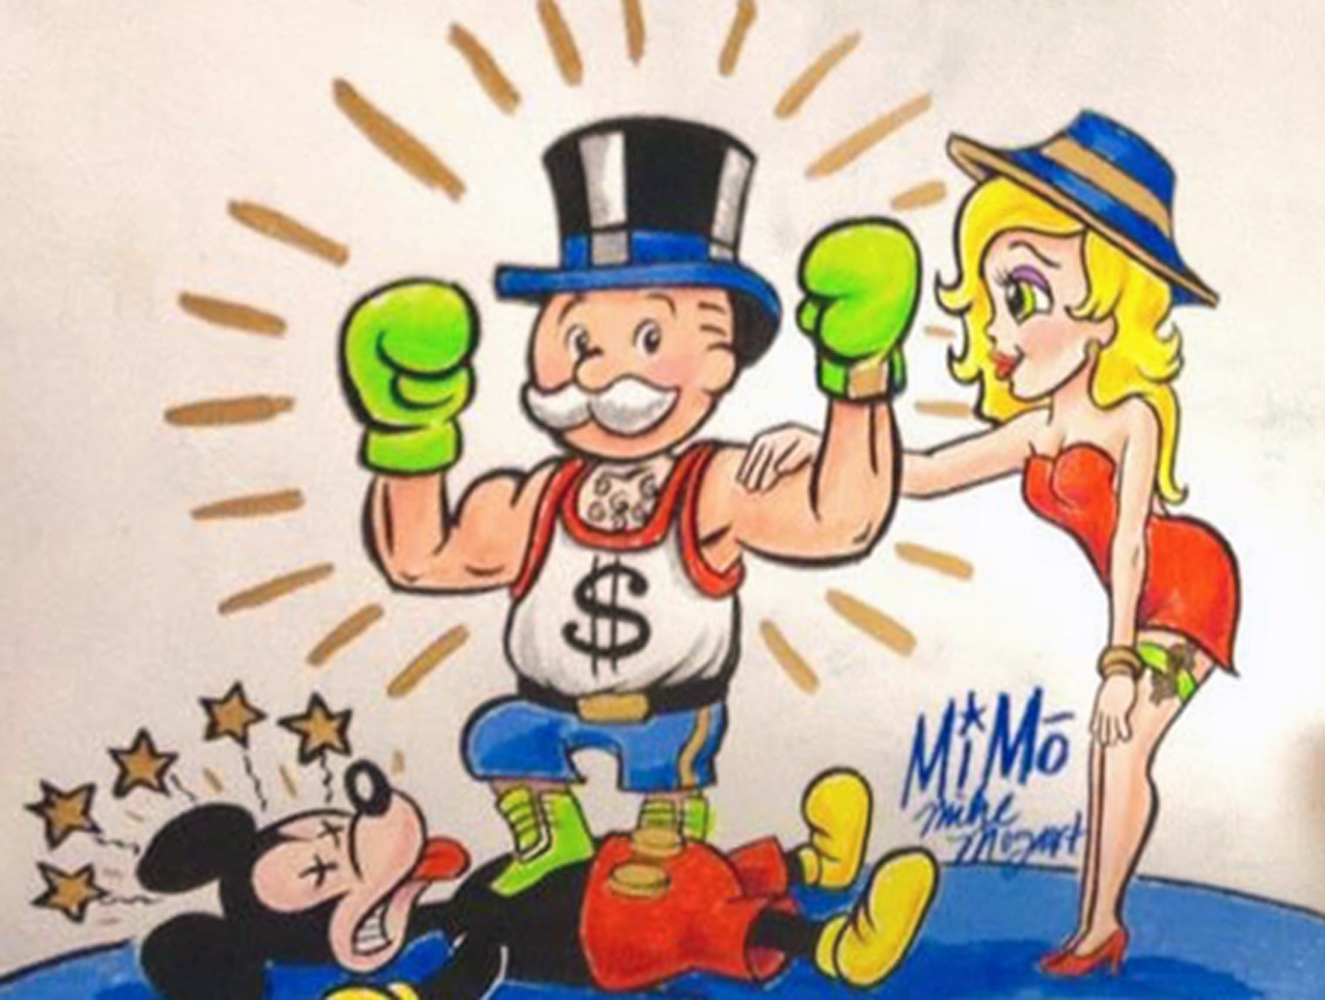 Mimo Monopoly Man Boxing Mickey Unique 2013 15x13